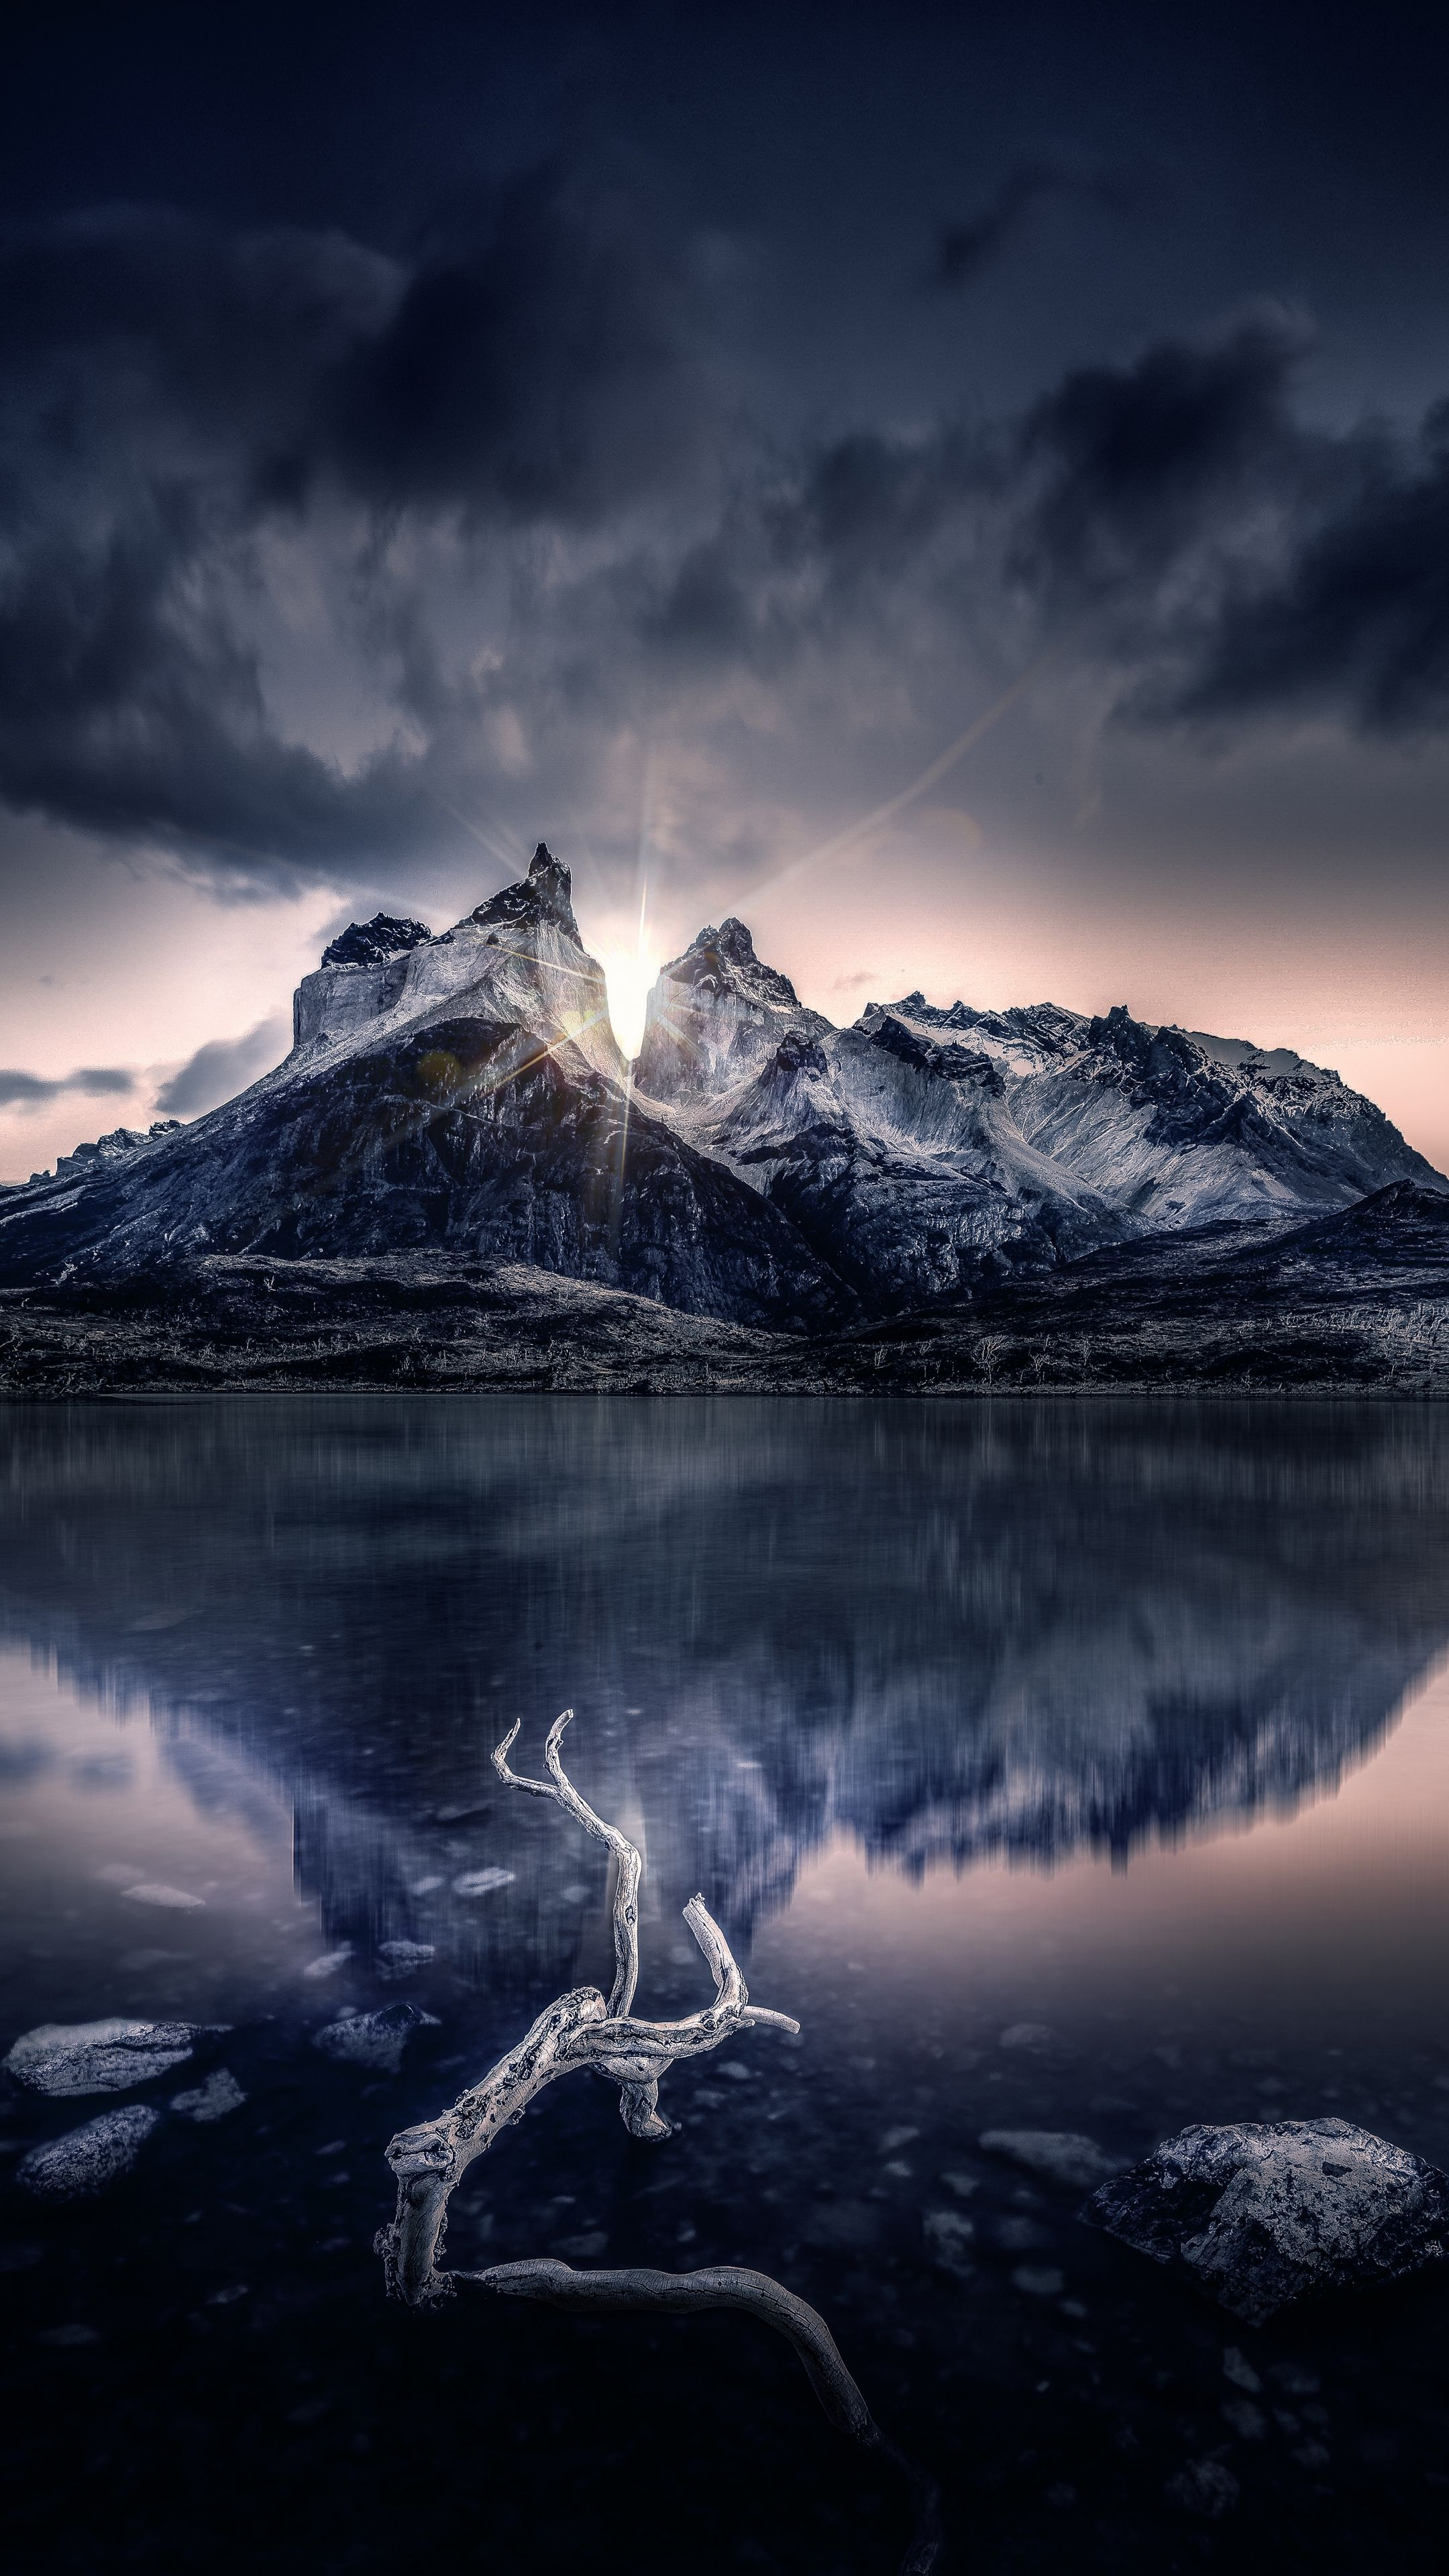 #Nature #mountain #lake #sunlight #wallpapers hd 4k background for android :) | Nature in 2019 ...